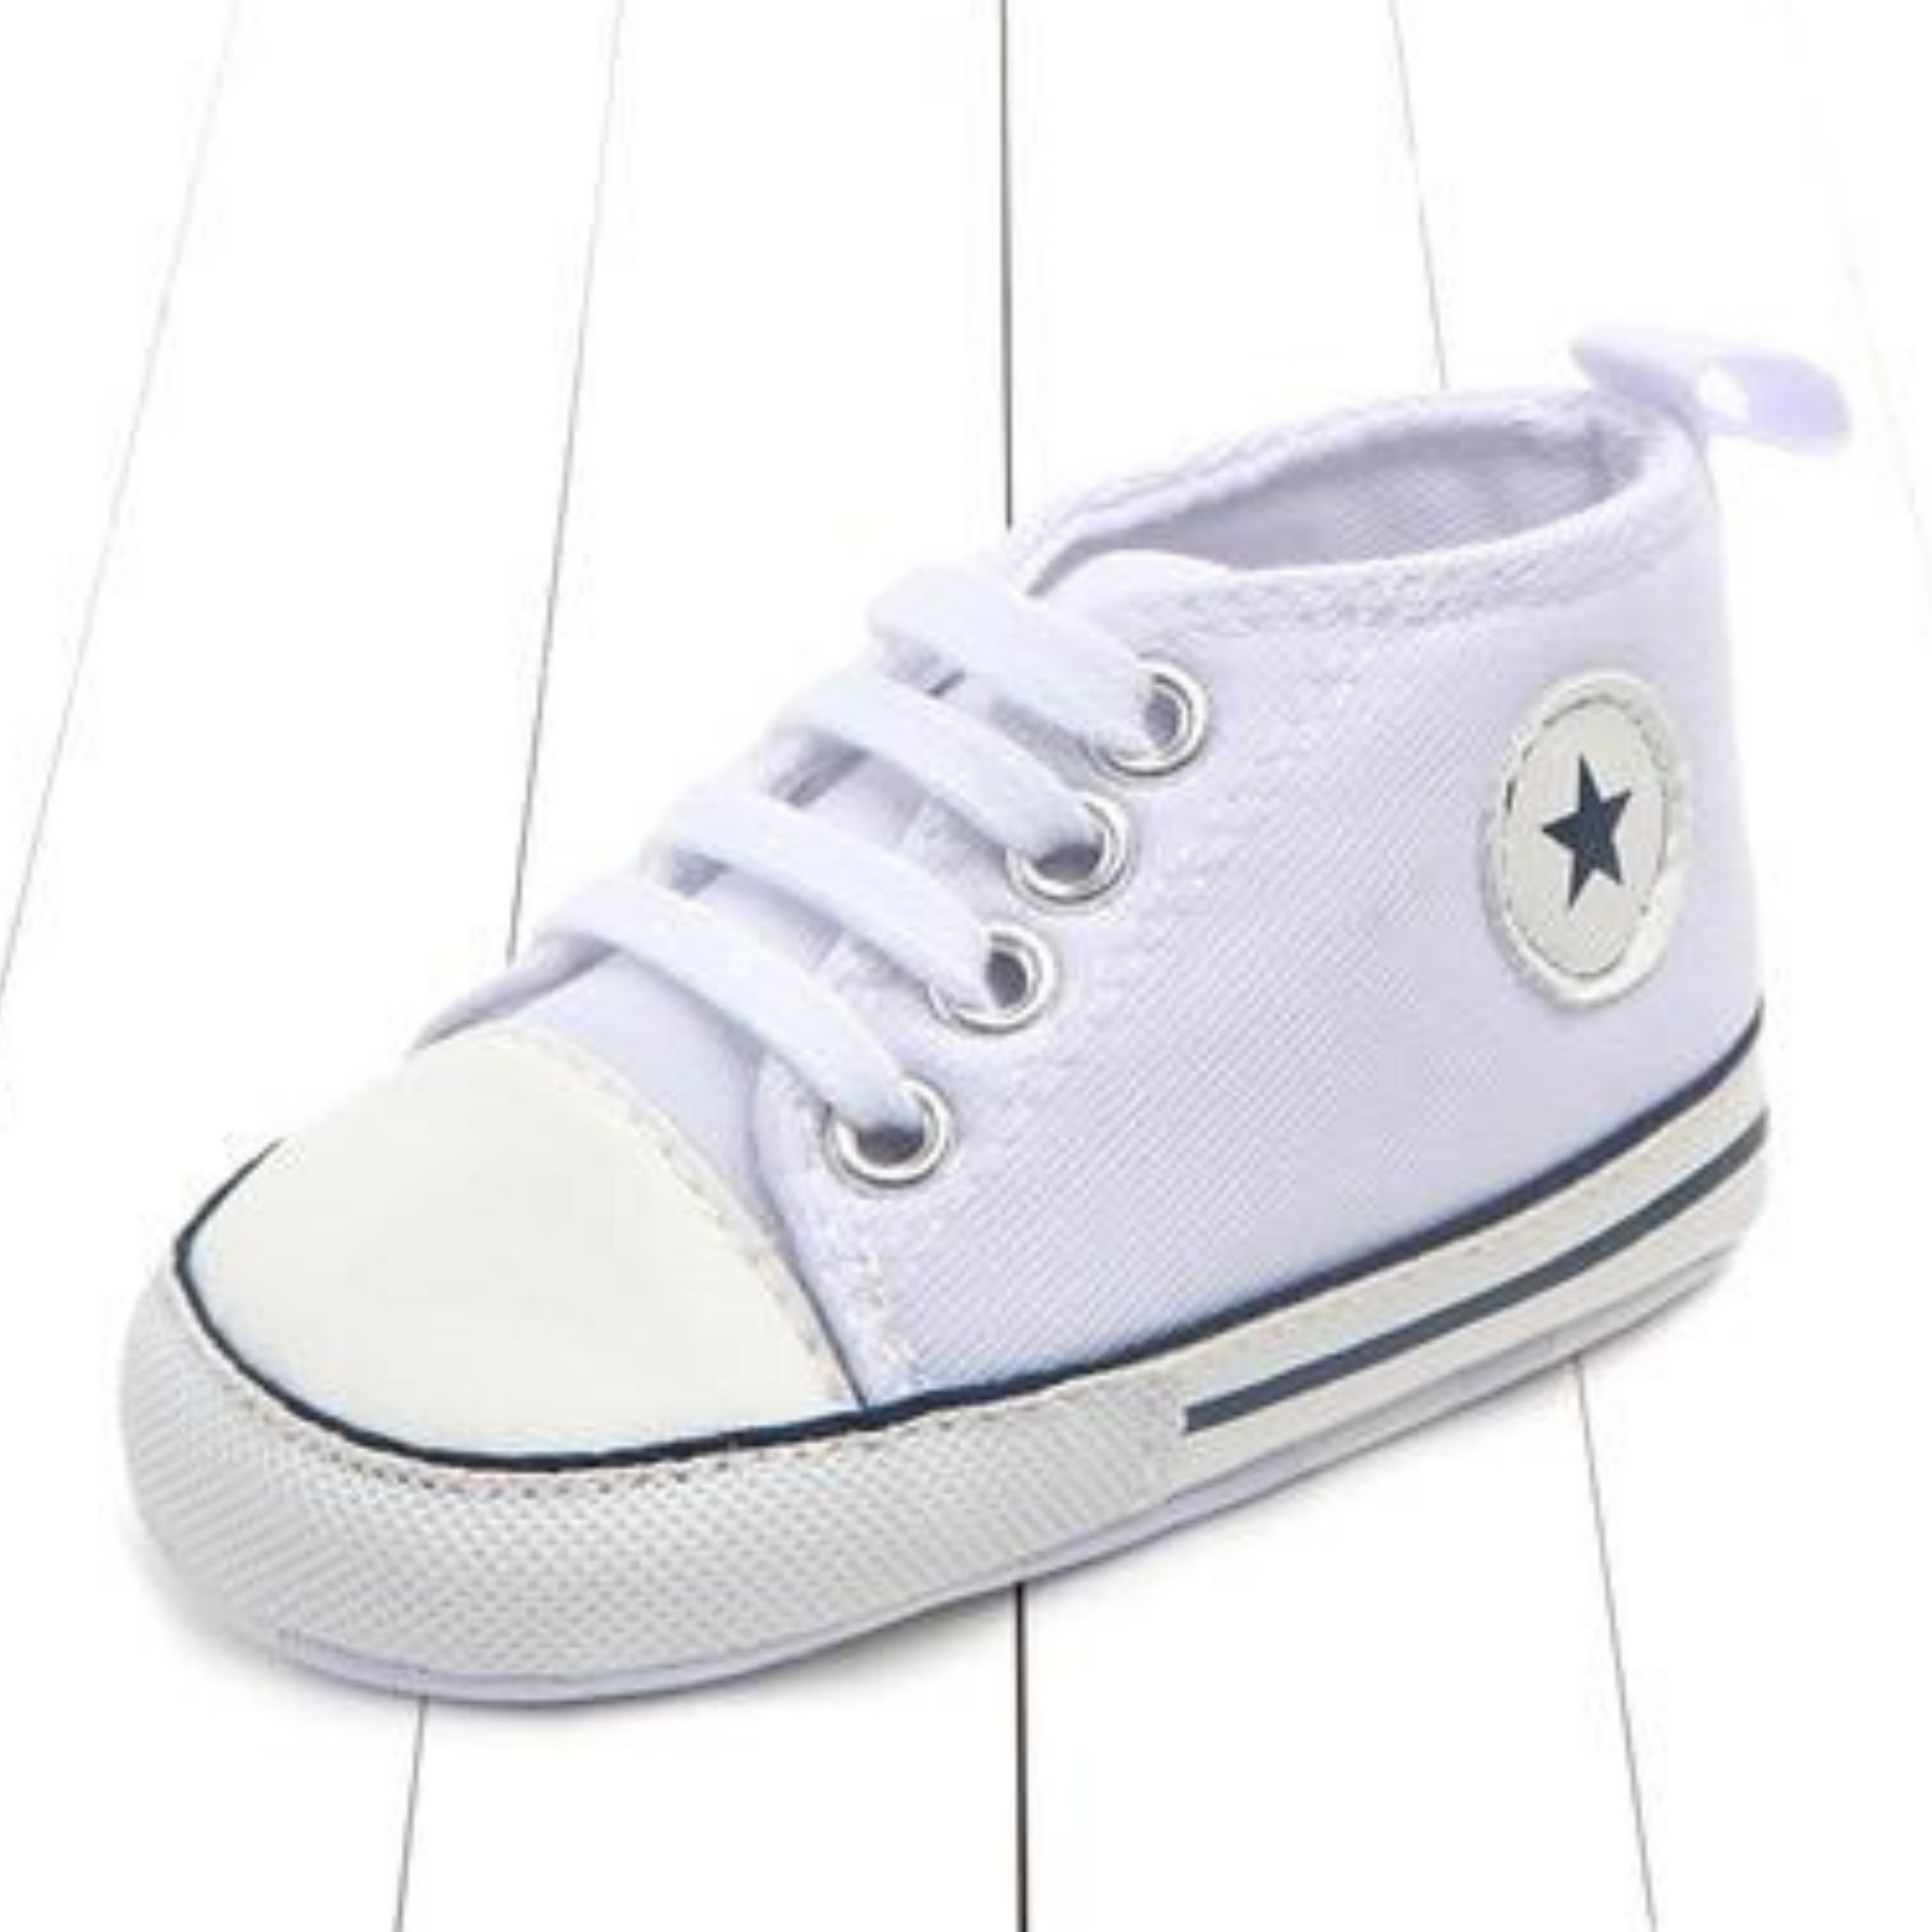 baby walking shoes in store